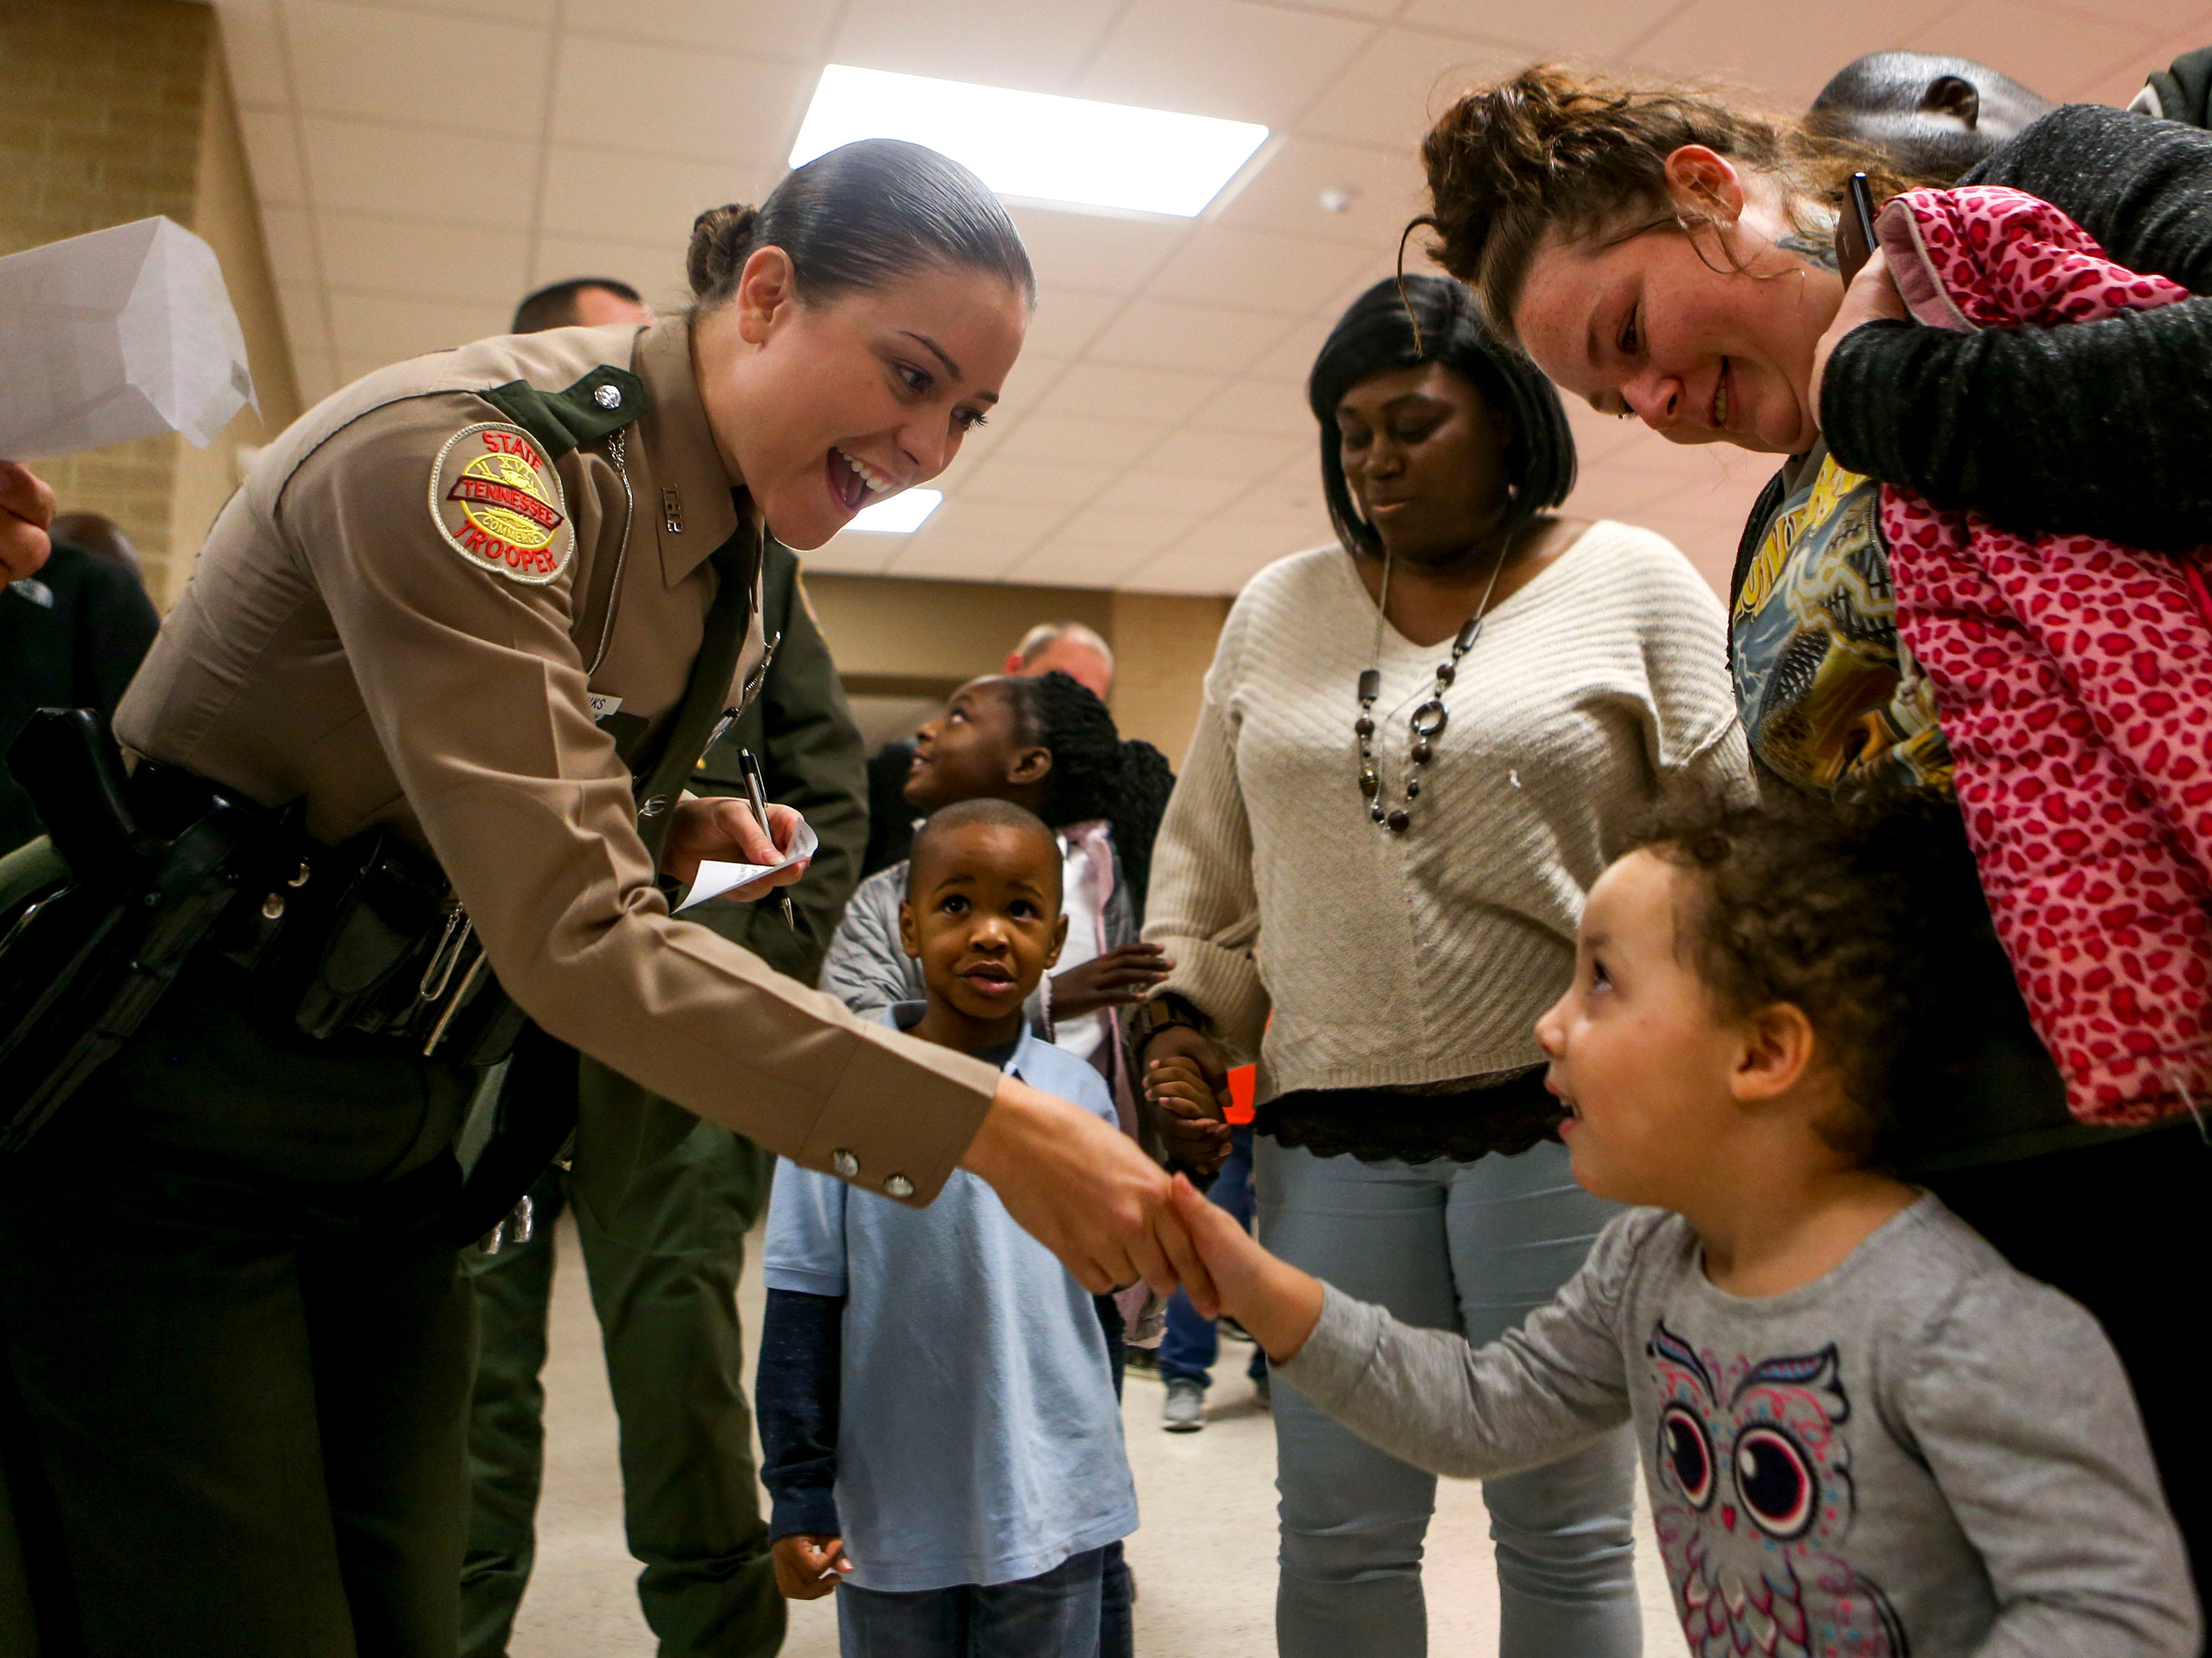 Trooper Jena Eubanks reaches down to shake hands with her match, Heavenly Gladney, 3, during the matching time for Shop with a Cop at Hawkins-Whitby Fema Community Safe Room in Milan, Tenn., on Thursday, Dec. 13, 2018.